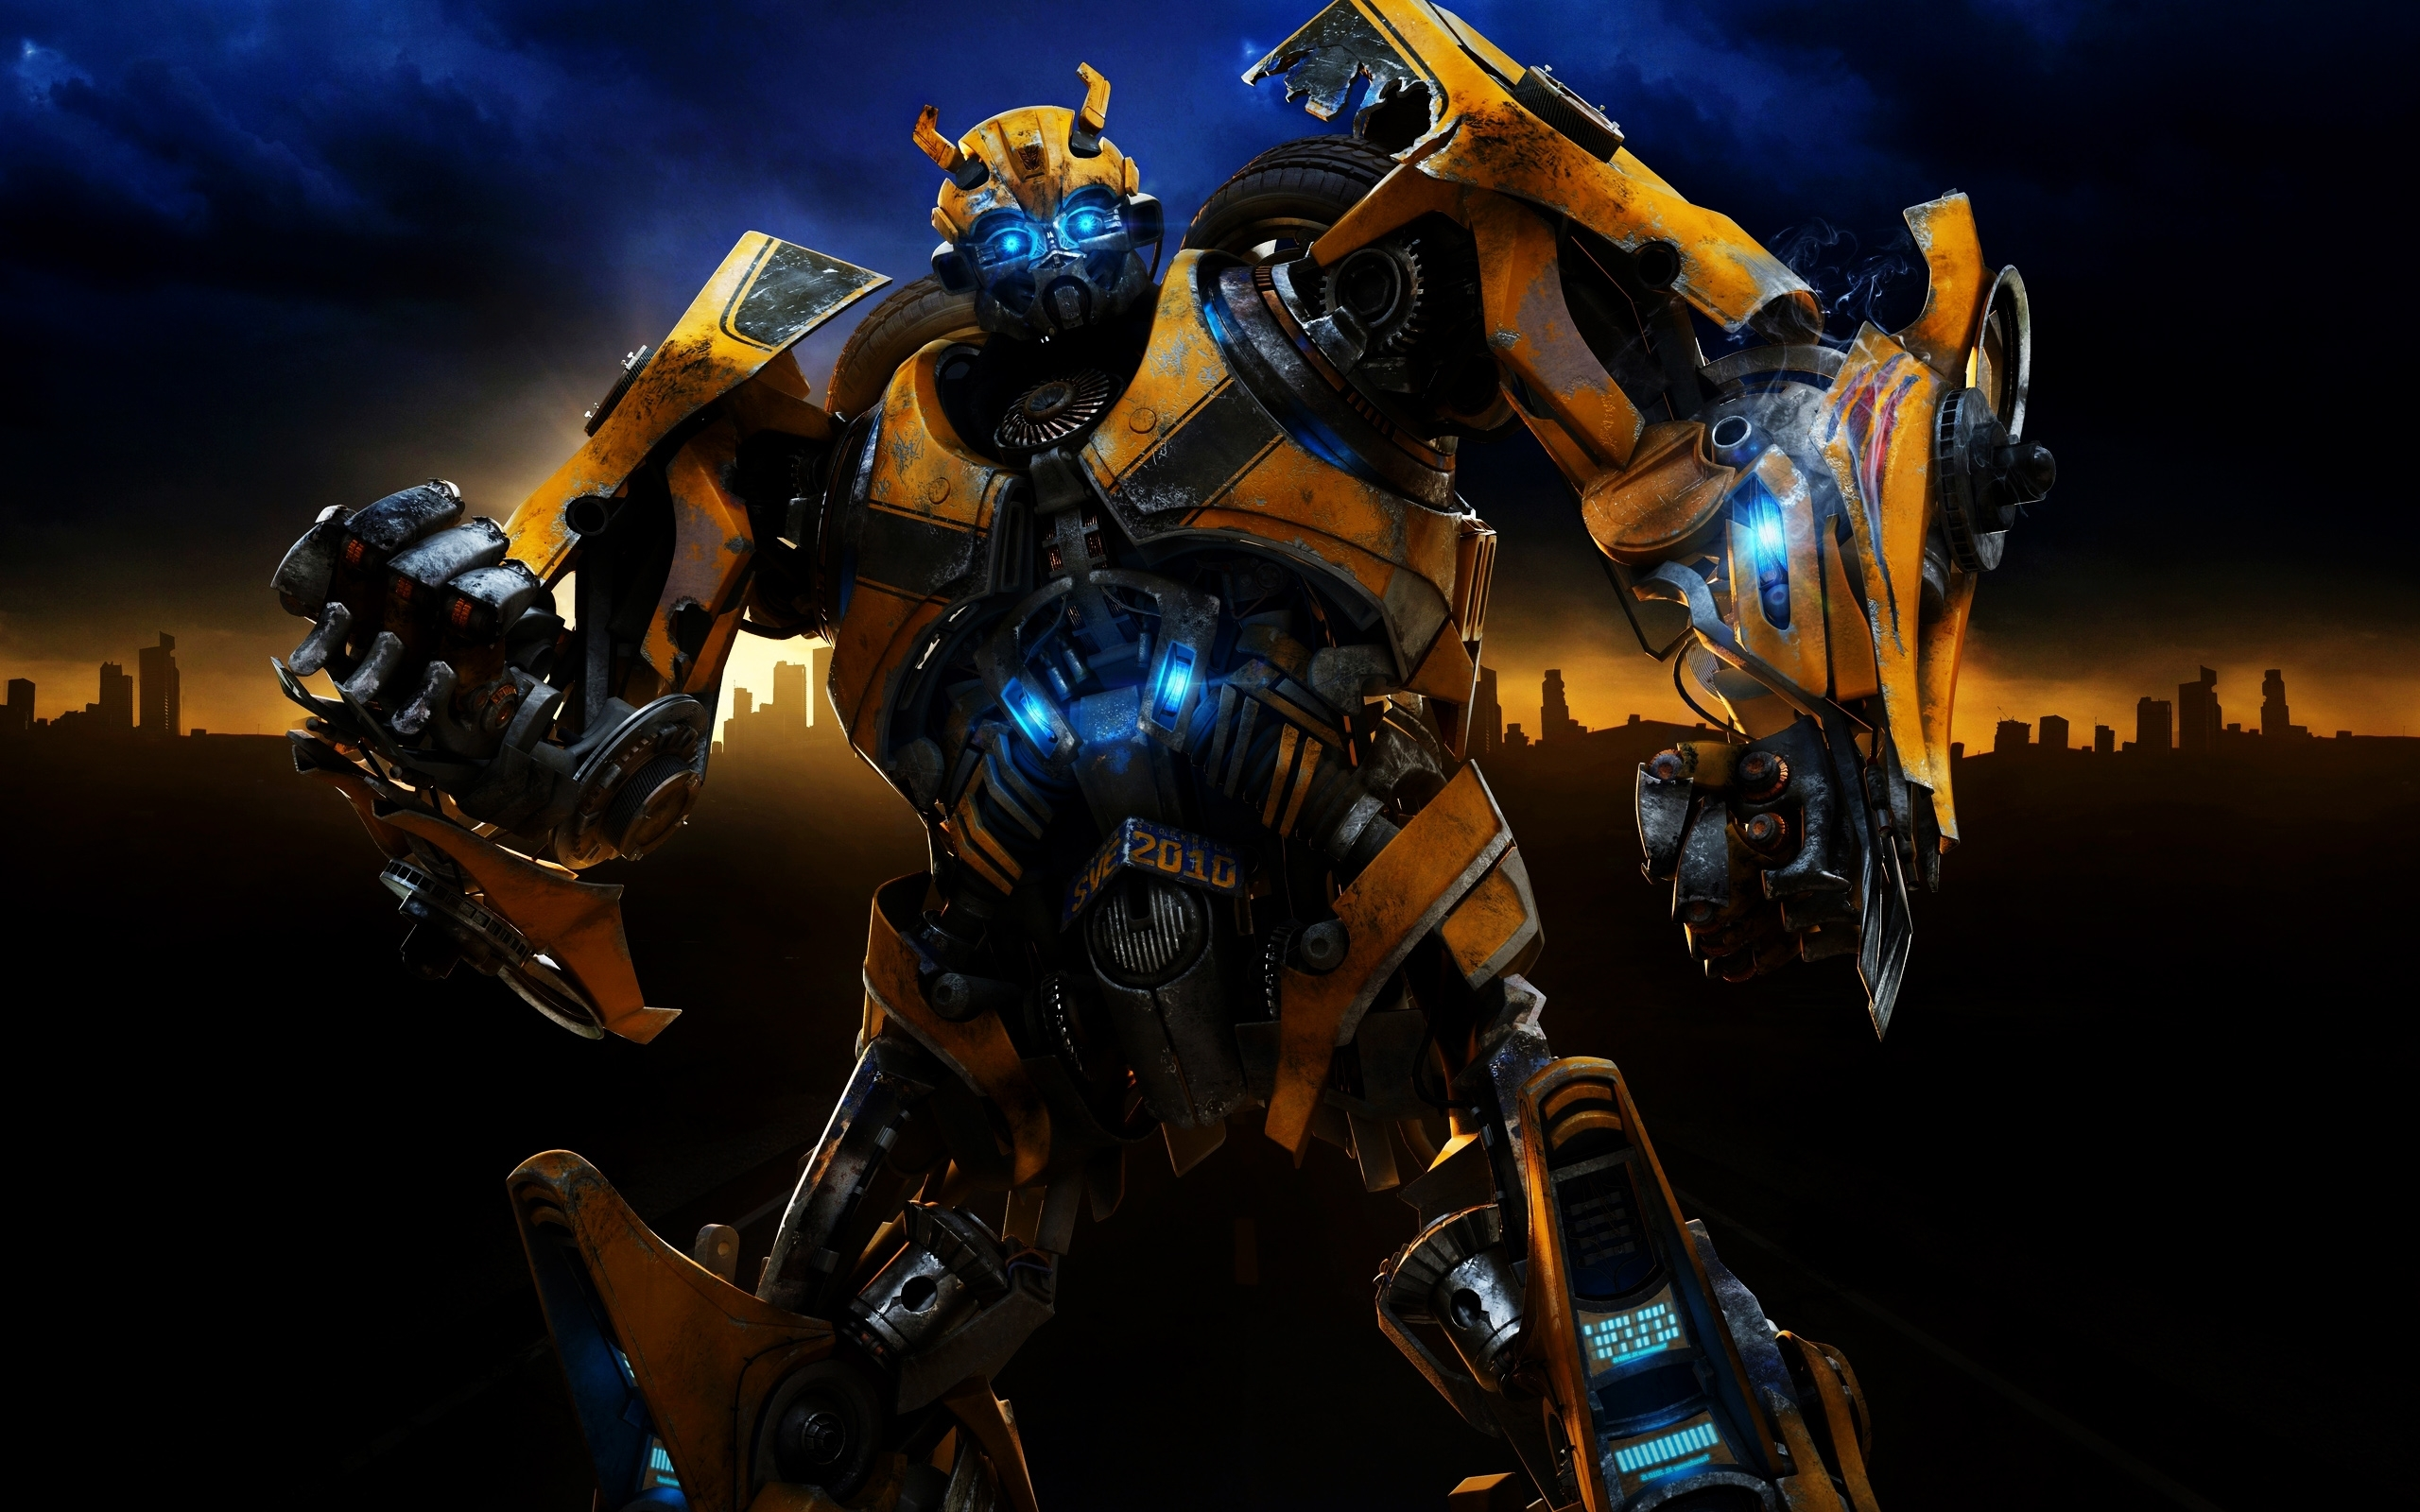 Bumblebee vs Optimus Prime Transformers The Last Knight 4K